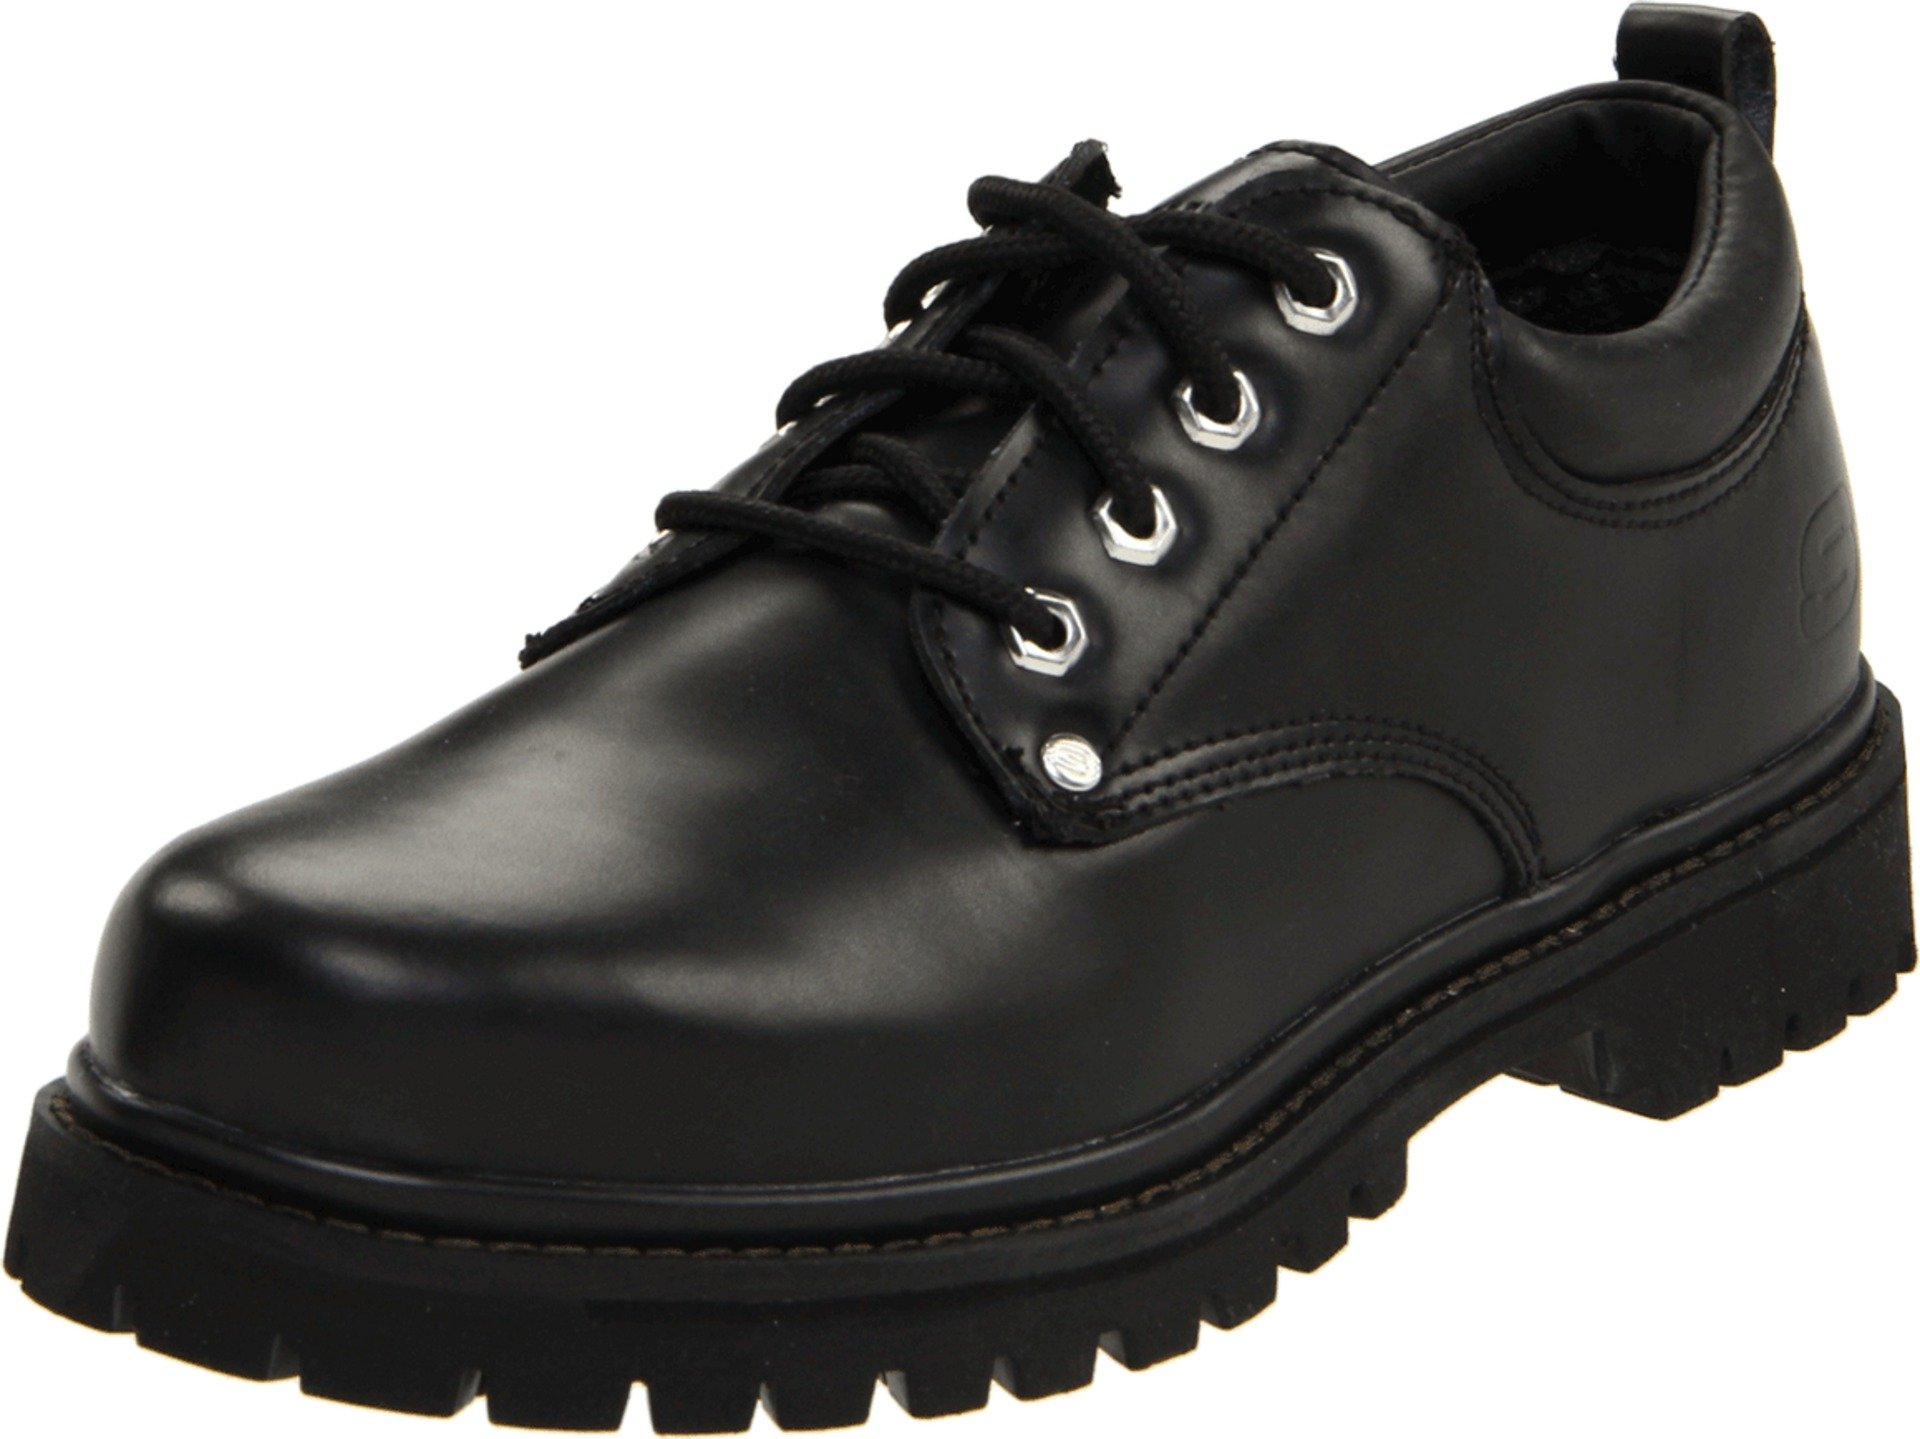 Skechers Black Tom Cat Shoes